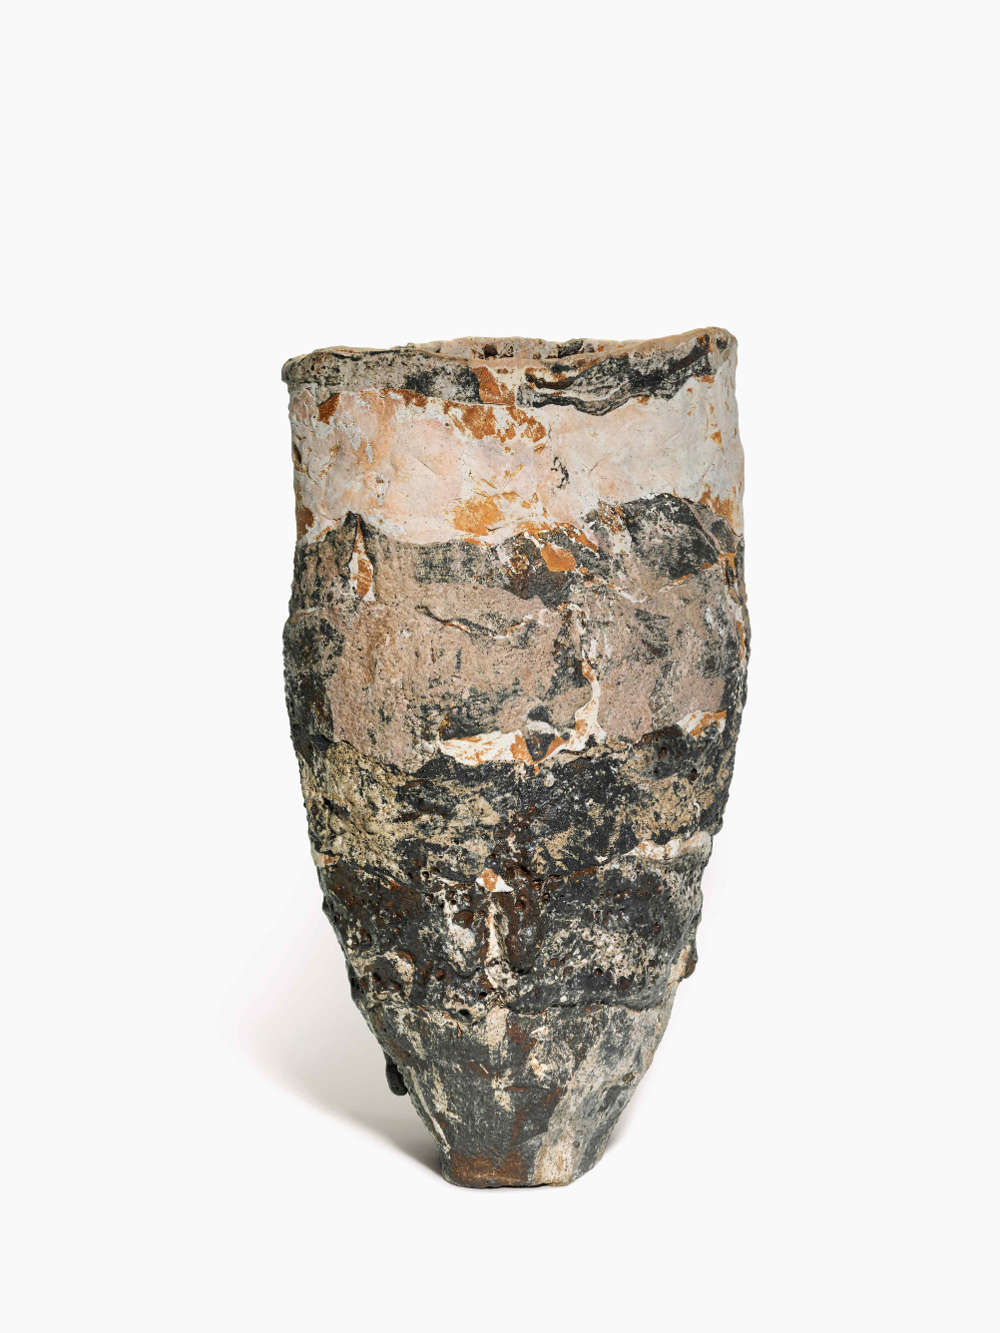 Ewen Henderson, UPRIGHT VESSEL, circa 1992. Mixed clay laminations with oxides and stains height: 51.5 cm. 20 1/4 in. diameter: 29.5 cm. 11 5/8 in.